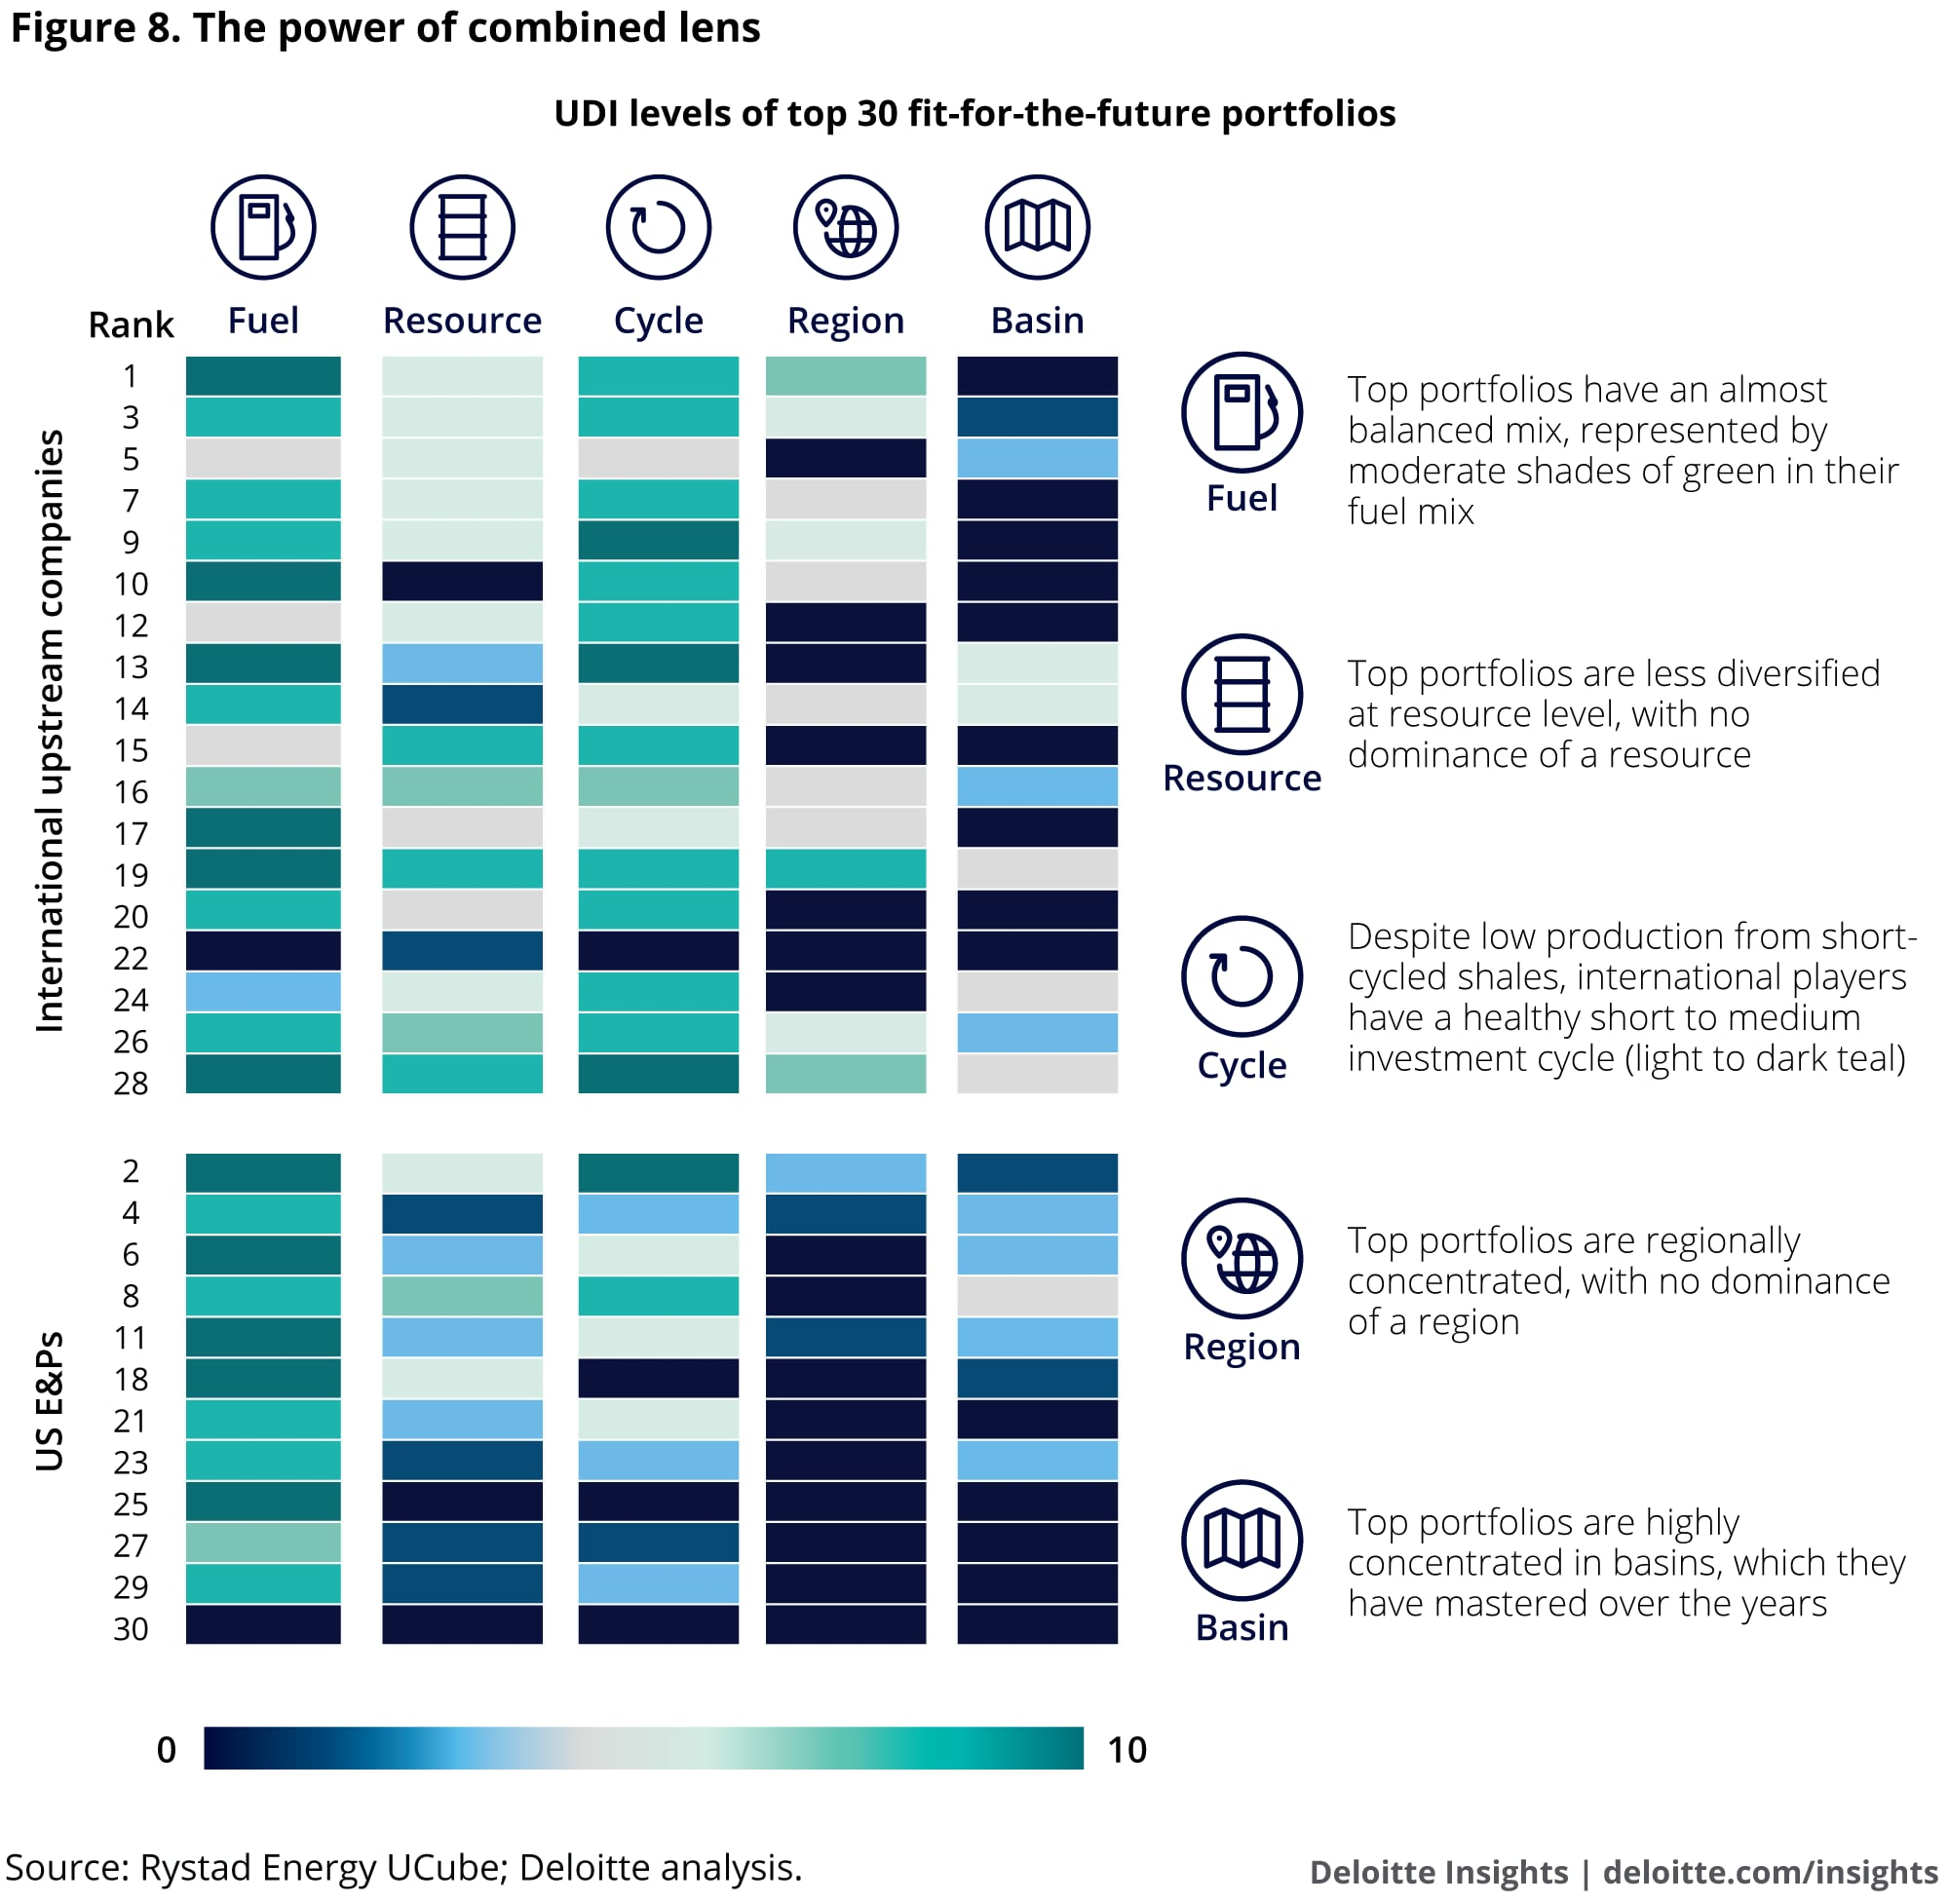 The power of a combined lens